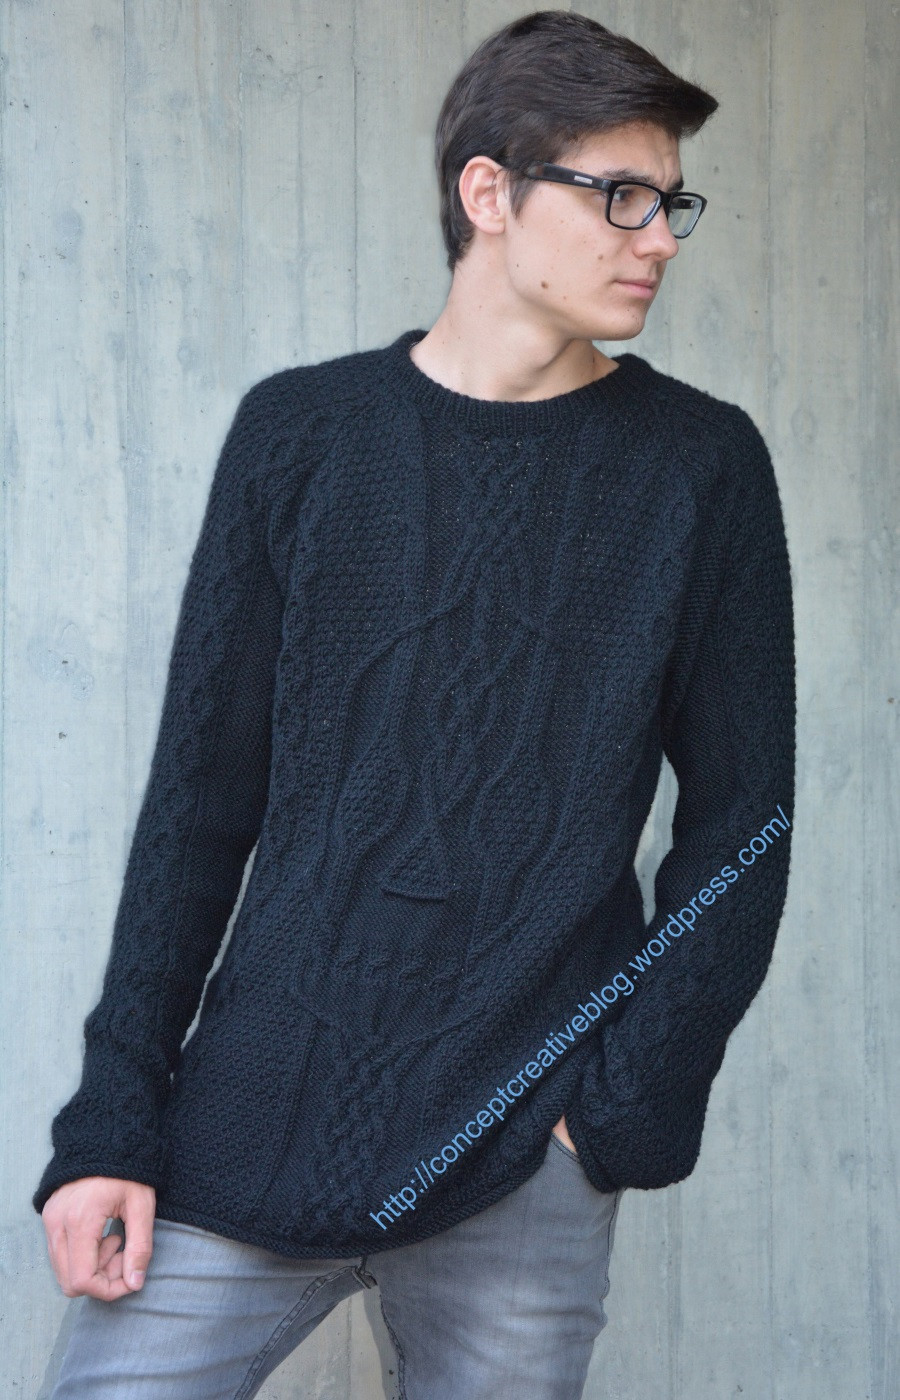 Elegant Knit Cable Pullover with Skull Pattern Free Diagram Cable Knit Sweater Pattern Of Lovely Hand Knit Sweater Womens Cable Knit Cardigan Hooded Coat Cable Knit Sweater Pattern